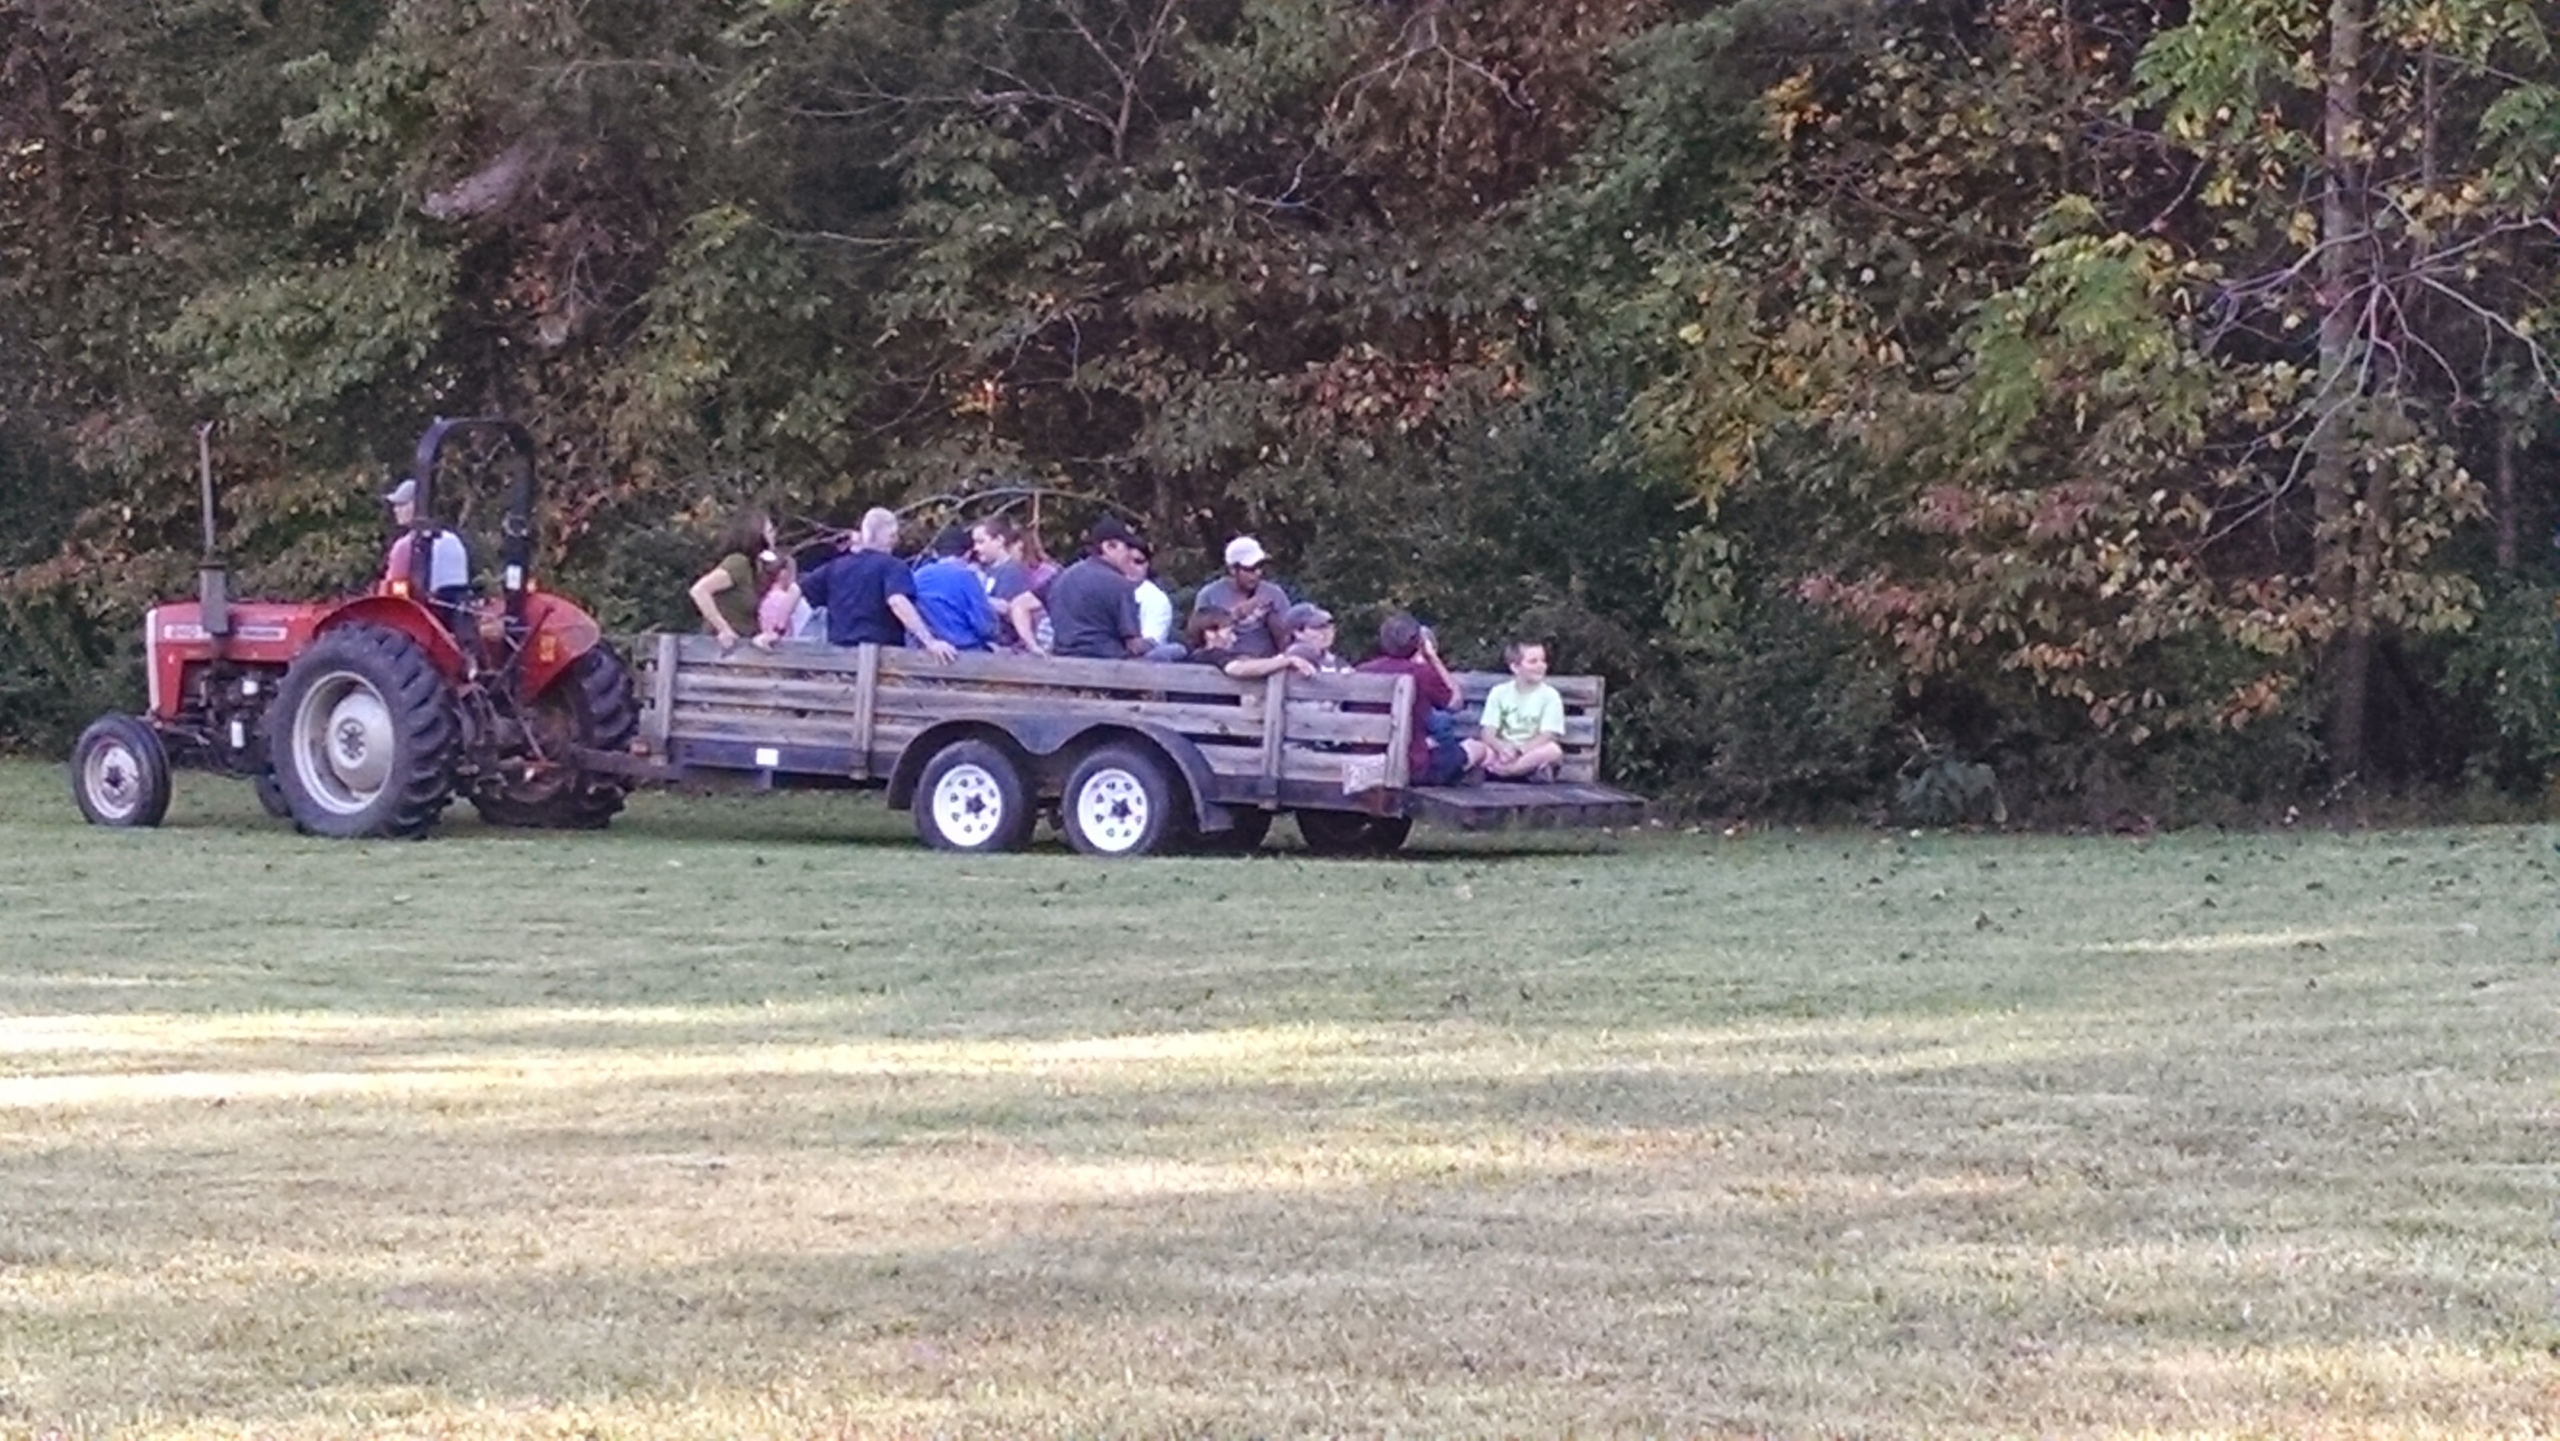 Group of people enjoying a tractor ride at an NC Fragile X event.